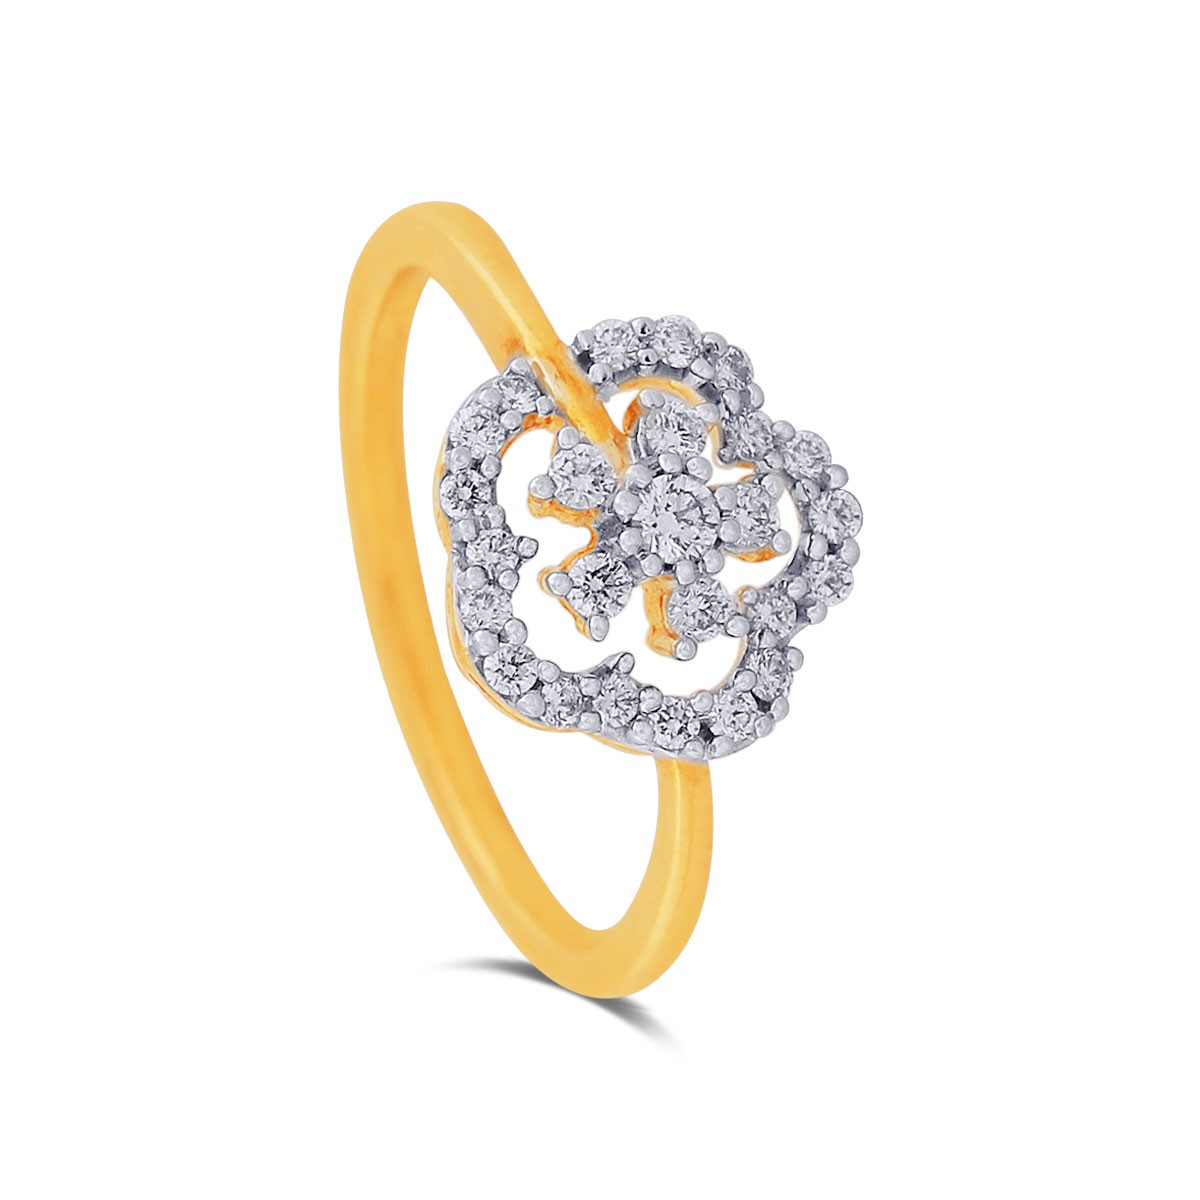 Niobe Yellow Gold Diamond Ring